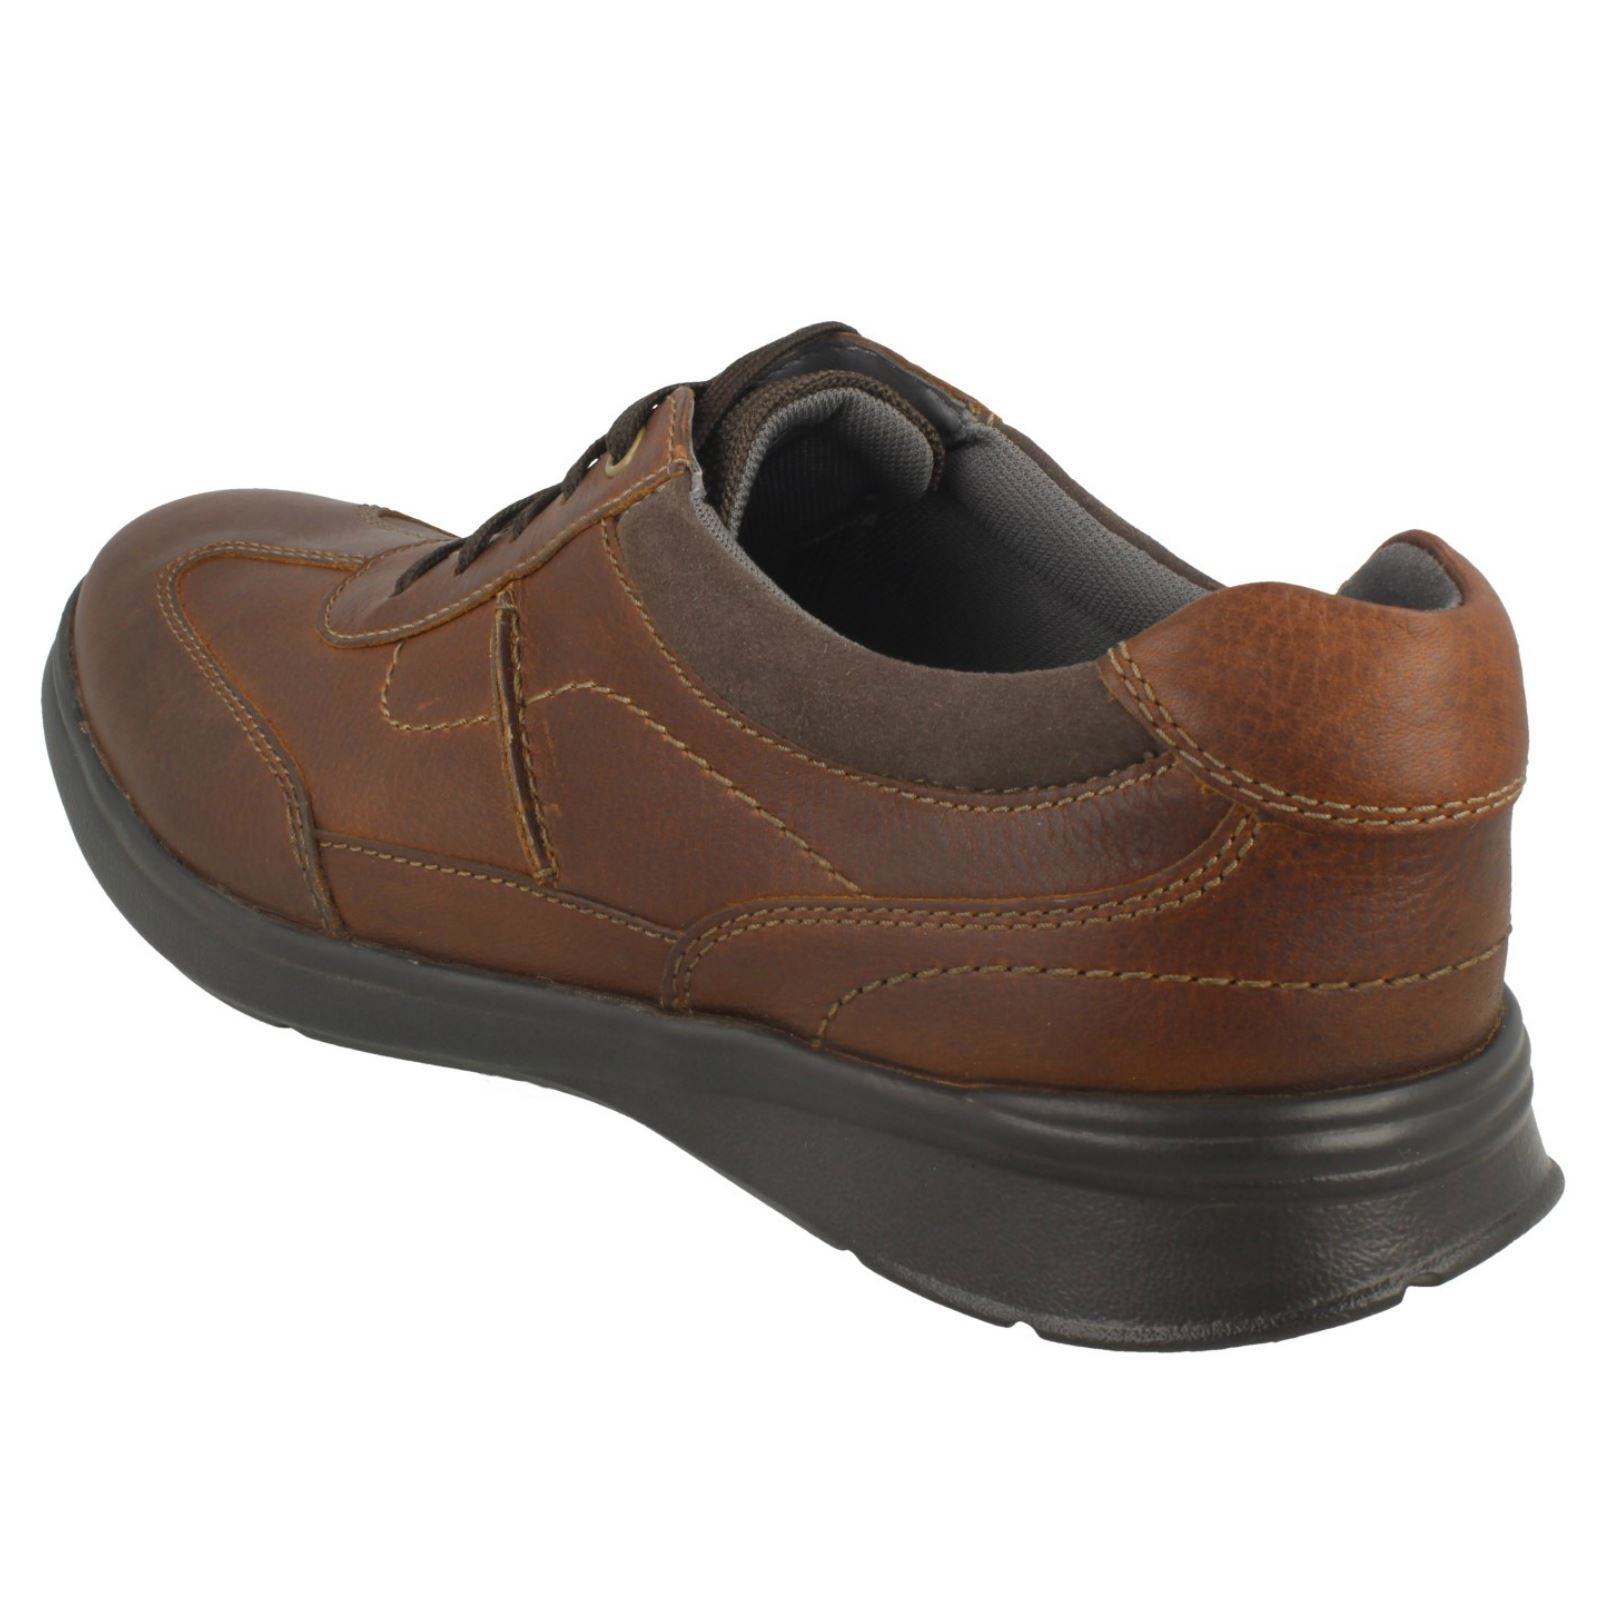 Herren Clarks Cotrell Style Casual Casual Style Schuhes 5566a3